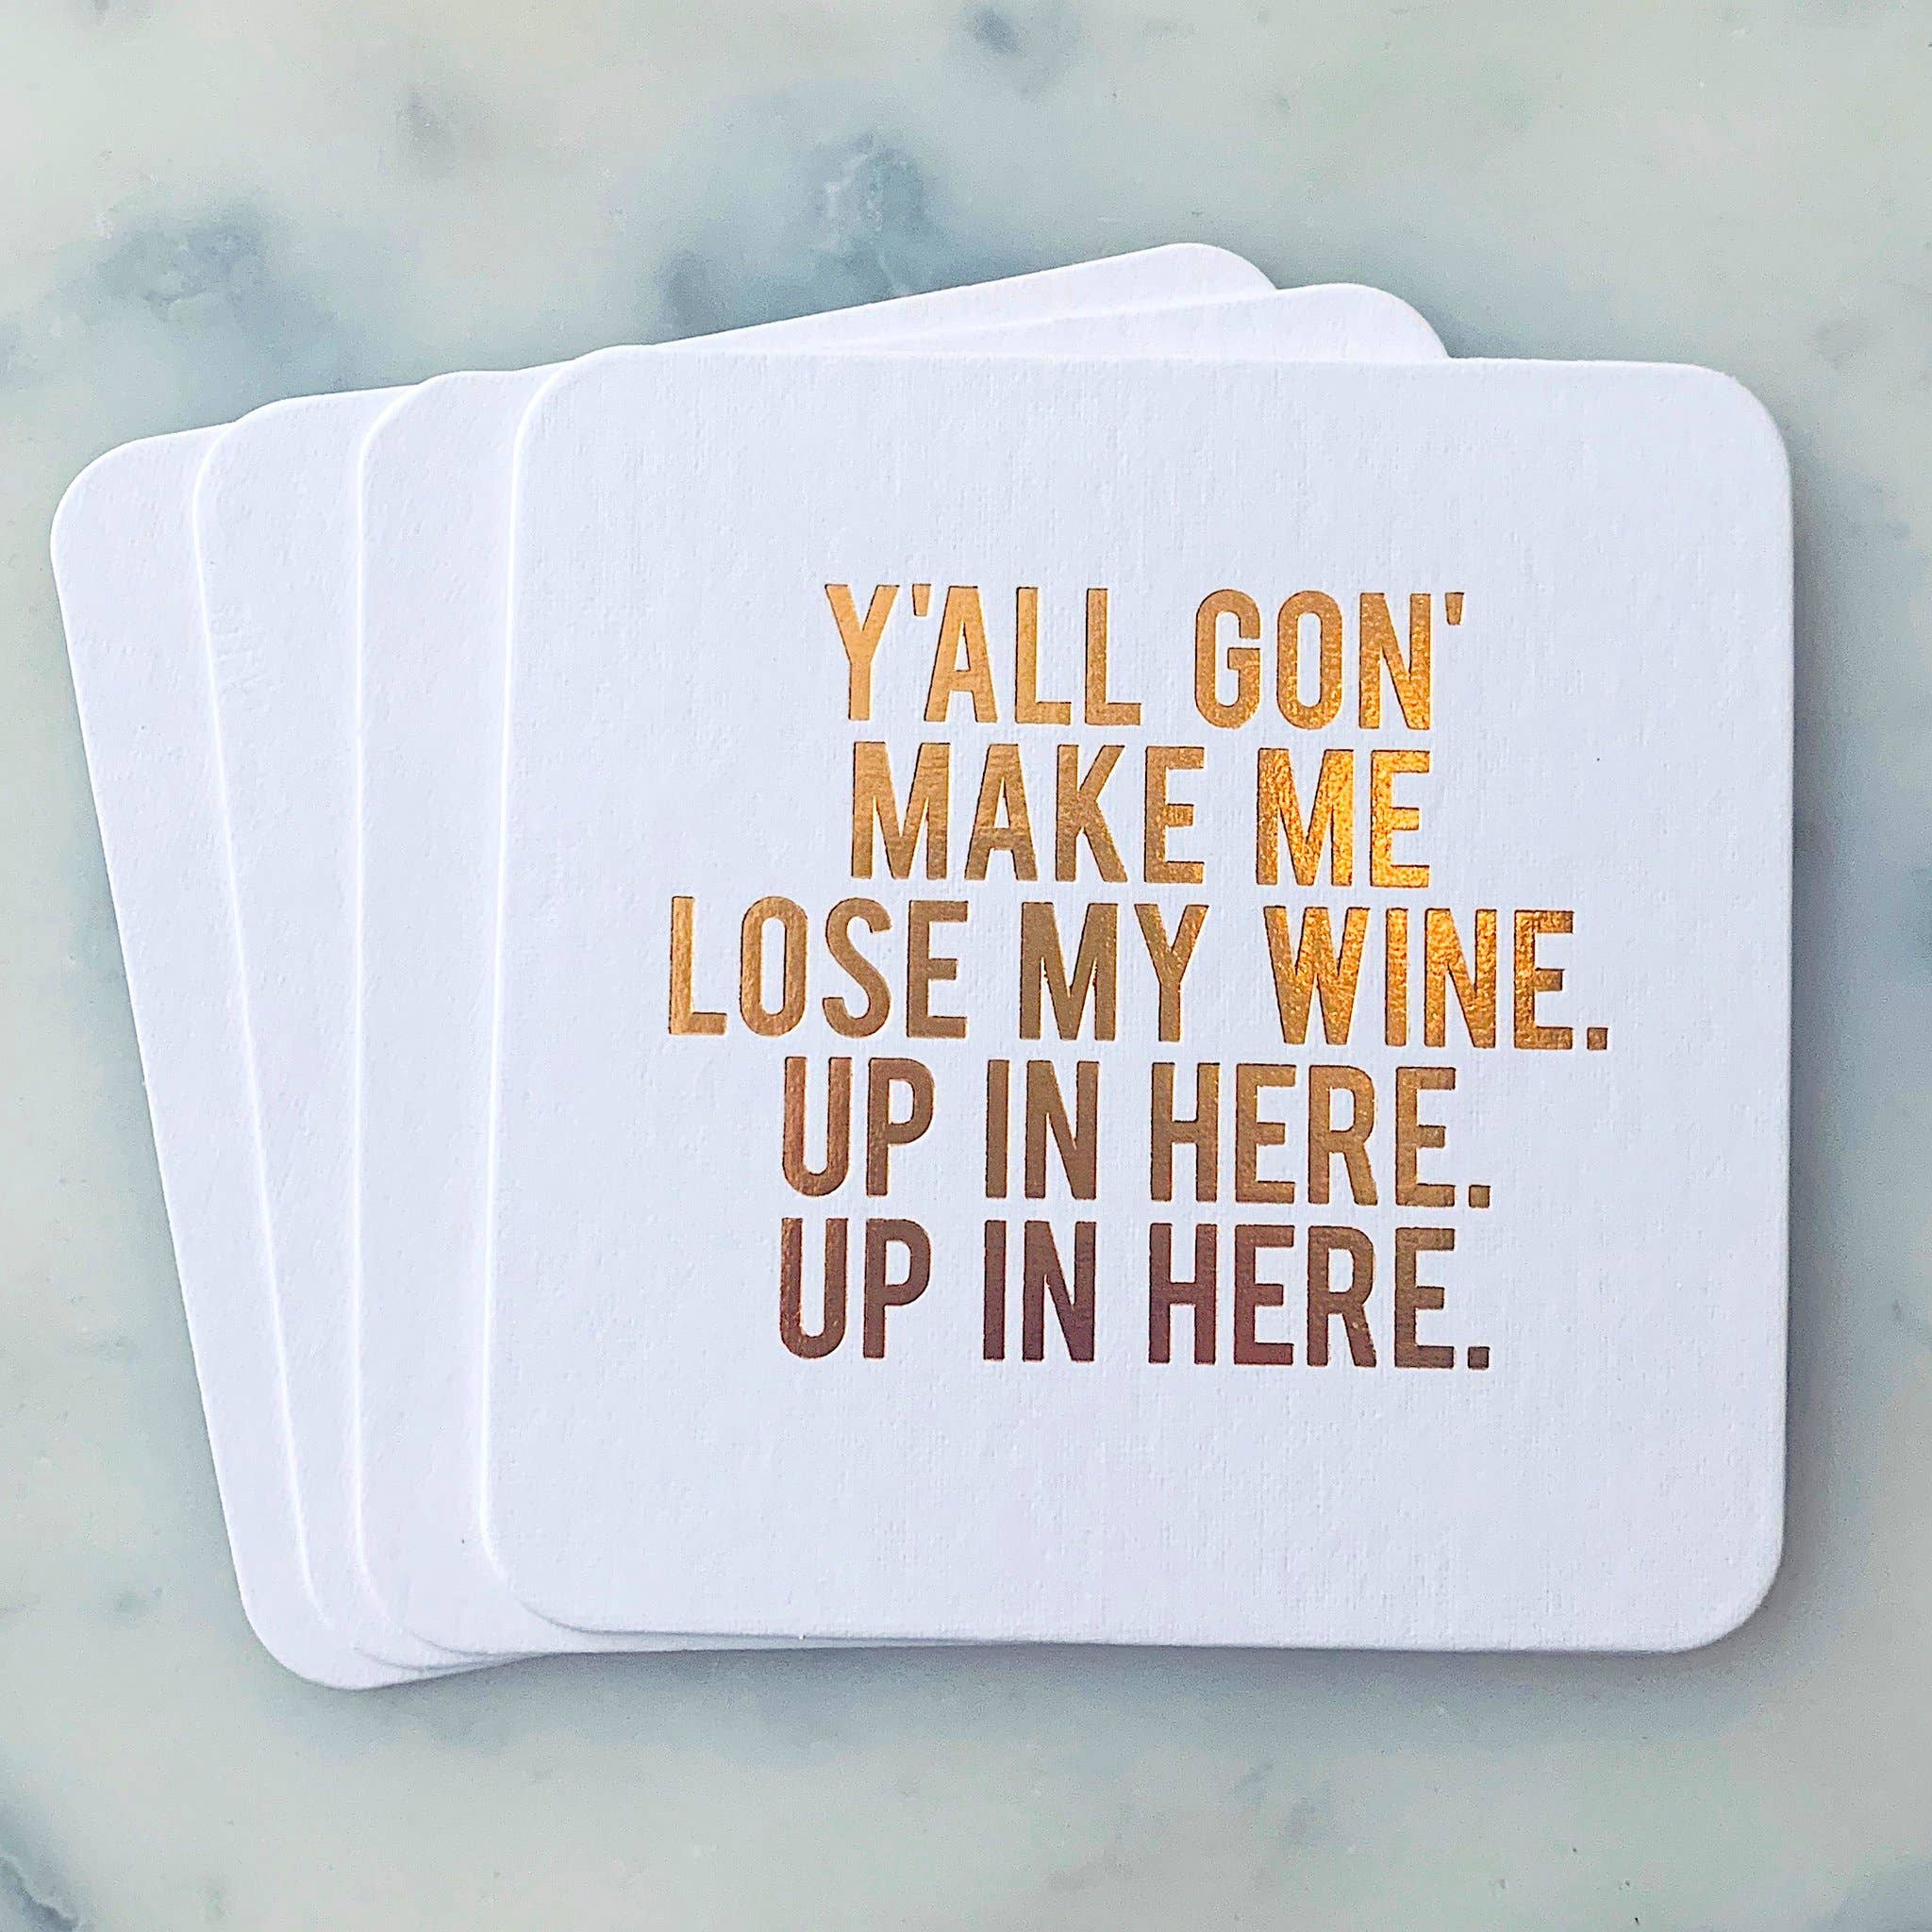 SippingTHIS - Y'all Gon' Make Me Lose My Wine Coasters